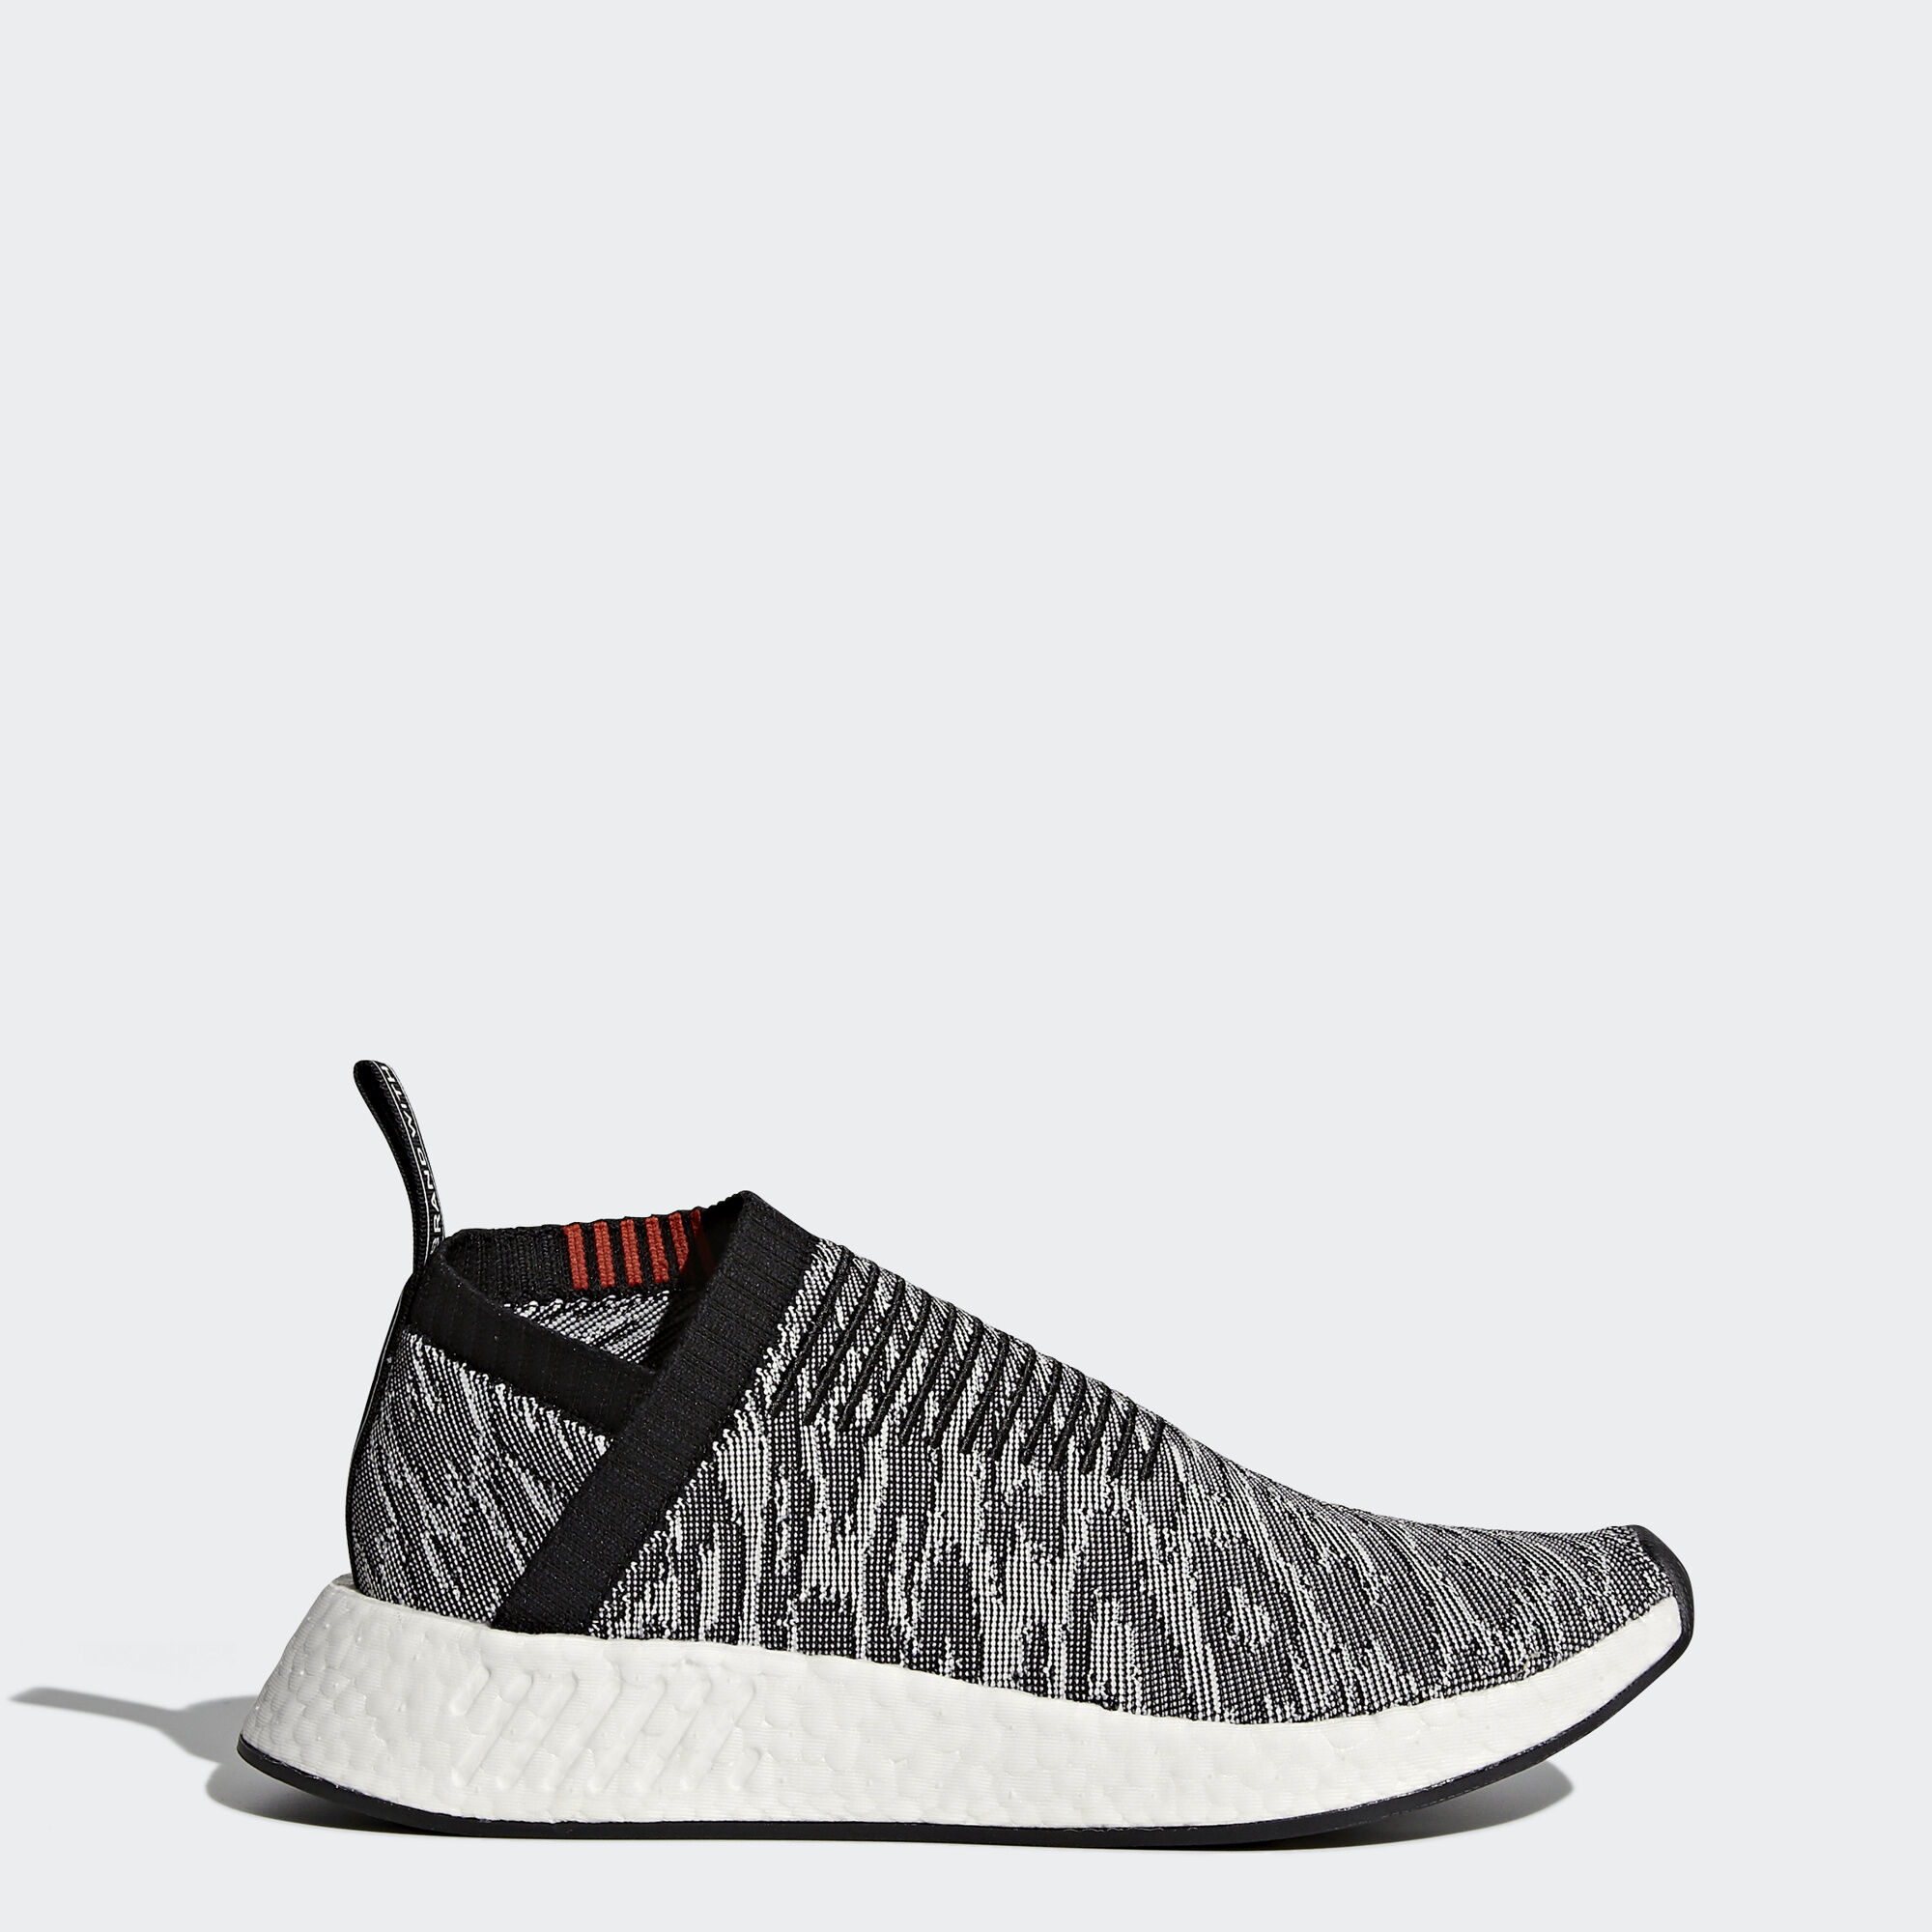 Adidas NMD_R2 Shoes BY9914 Crystal White/Crystal White/Black